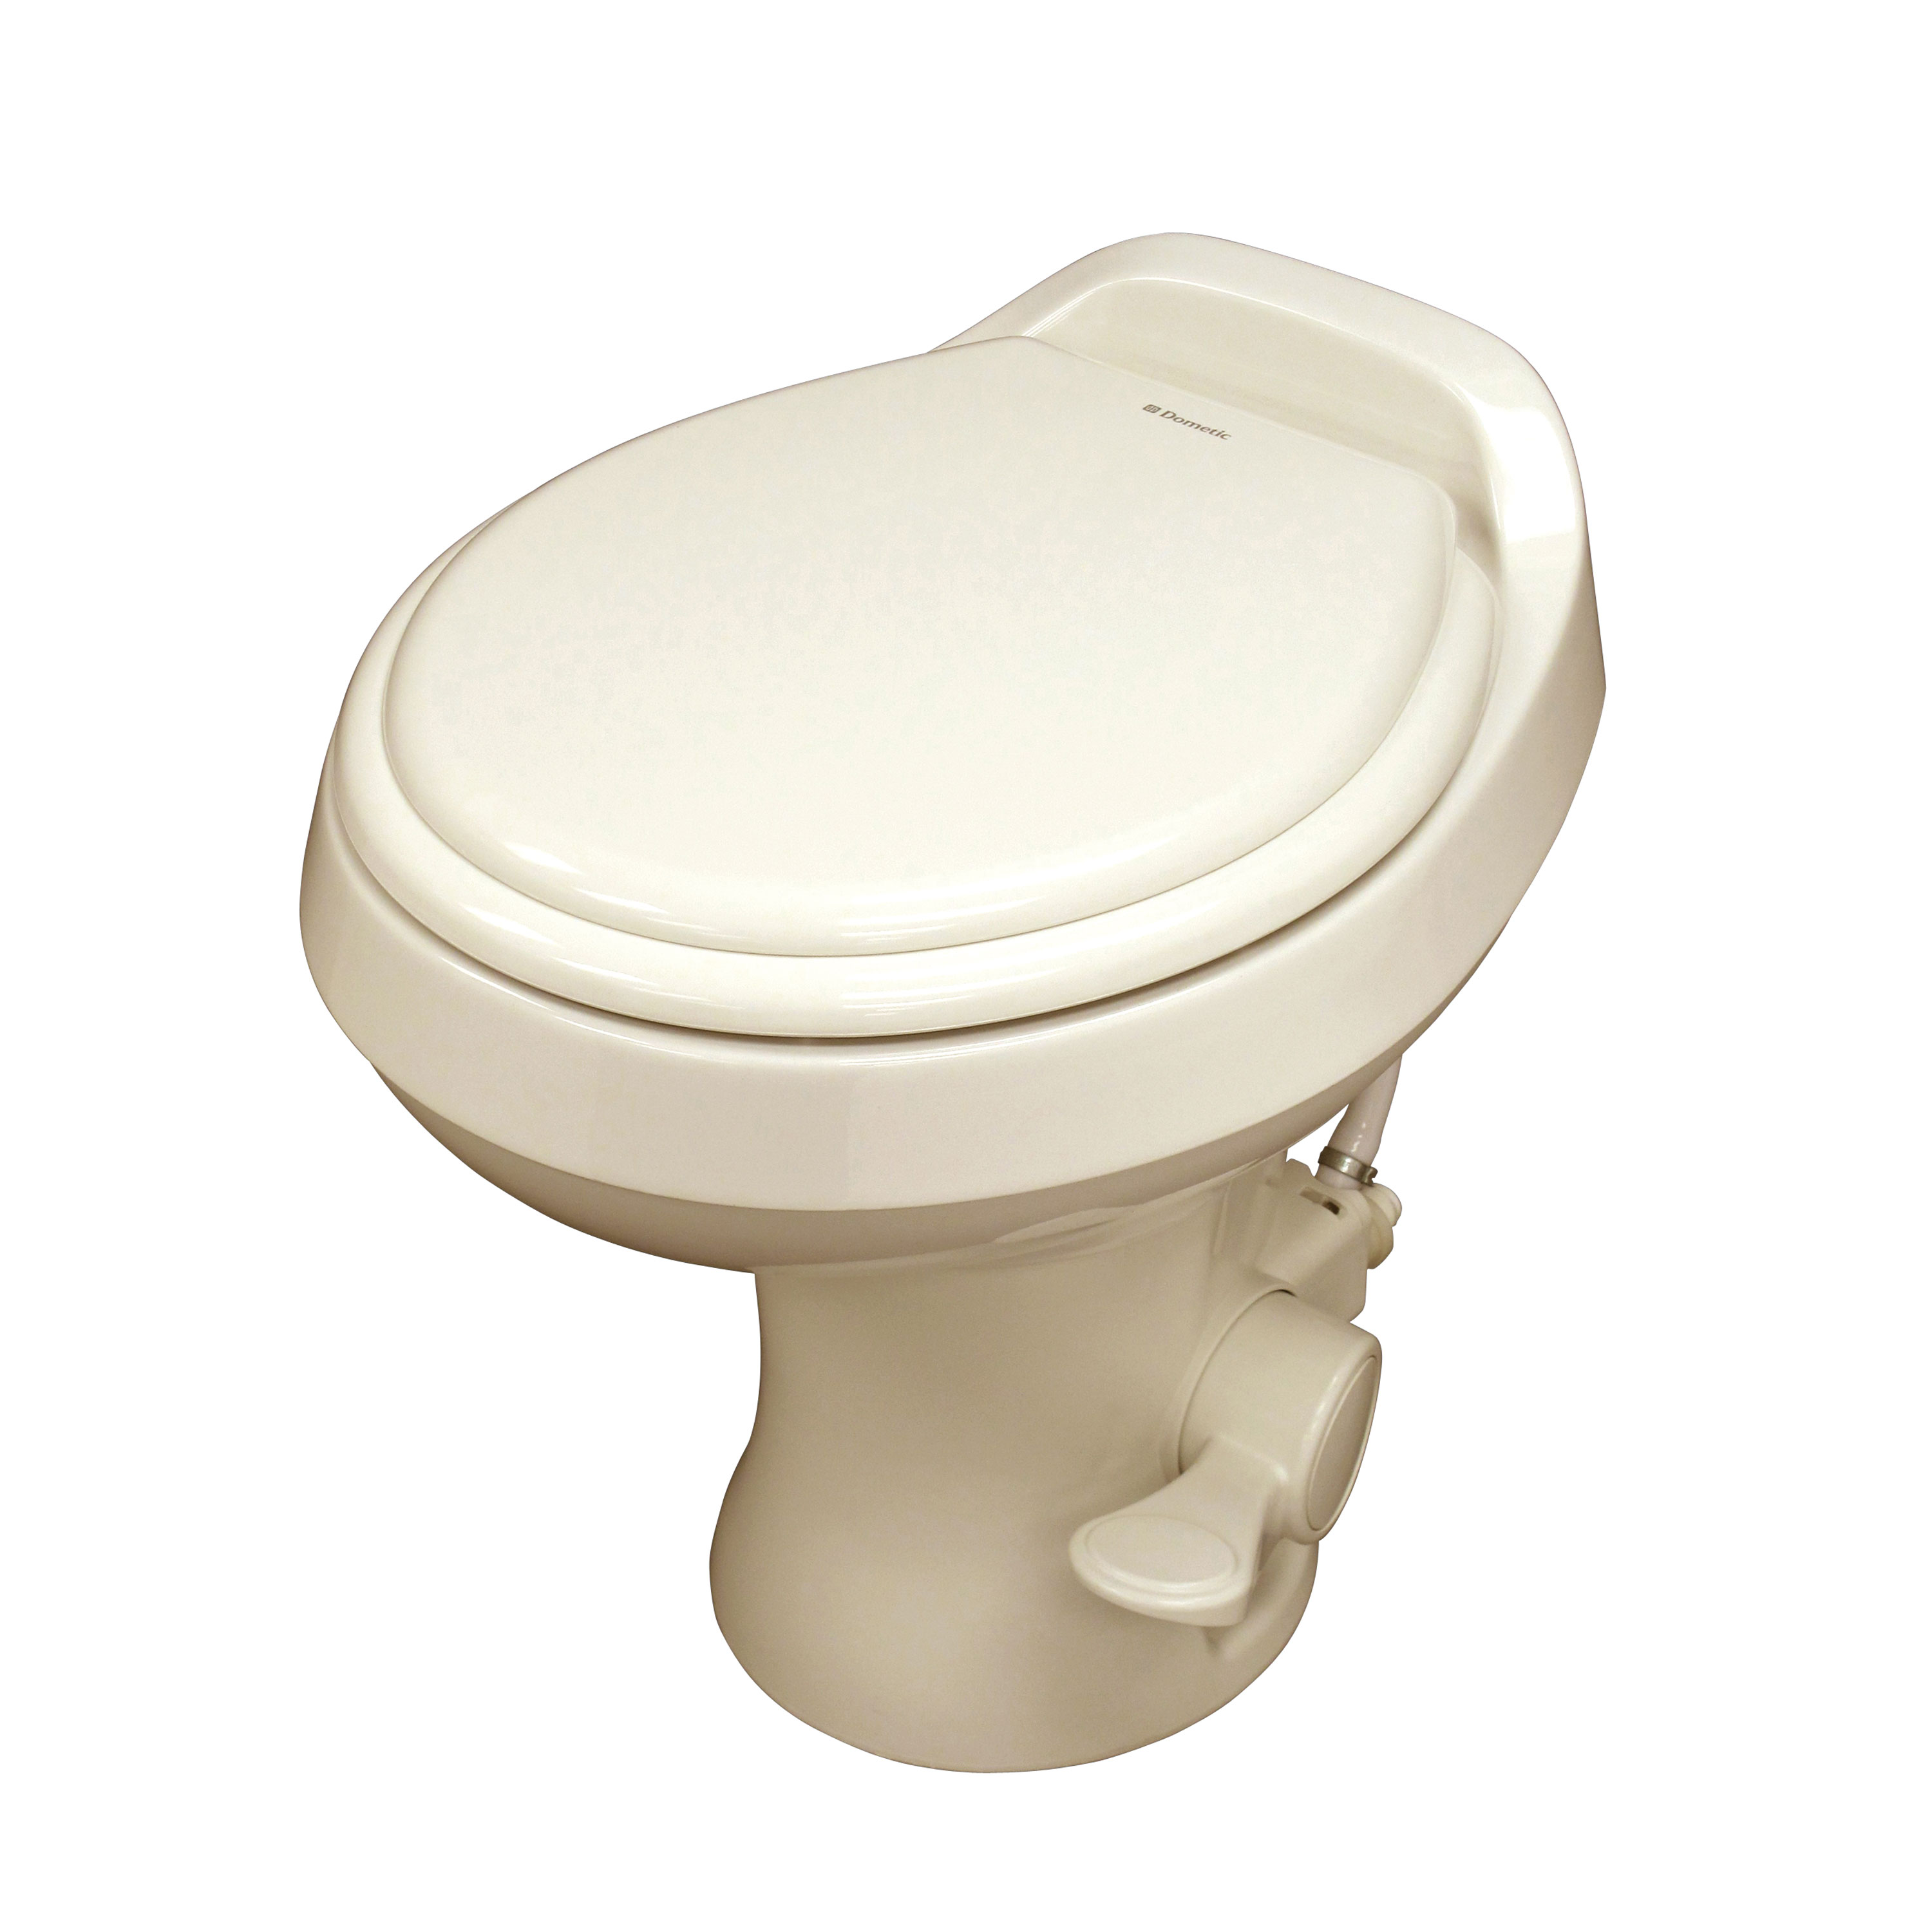 Dometic 302300073 300 Series Standard Height RV Toilet Bone by Dometic